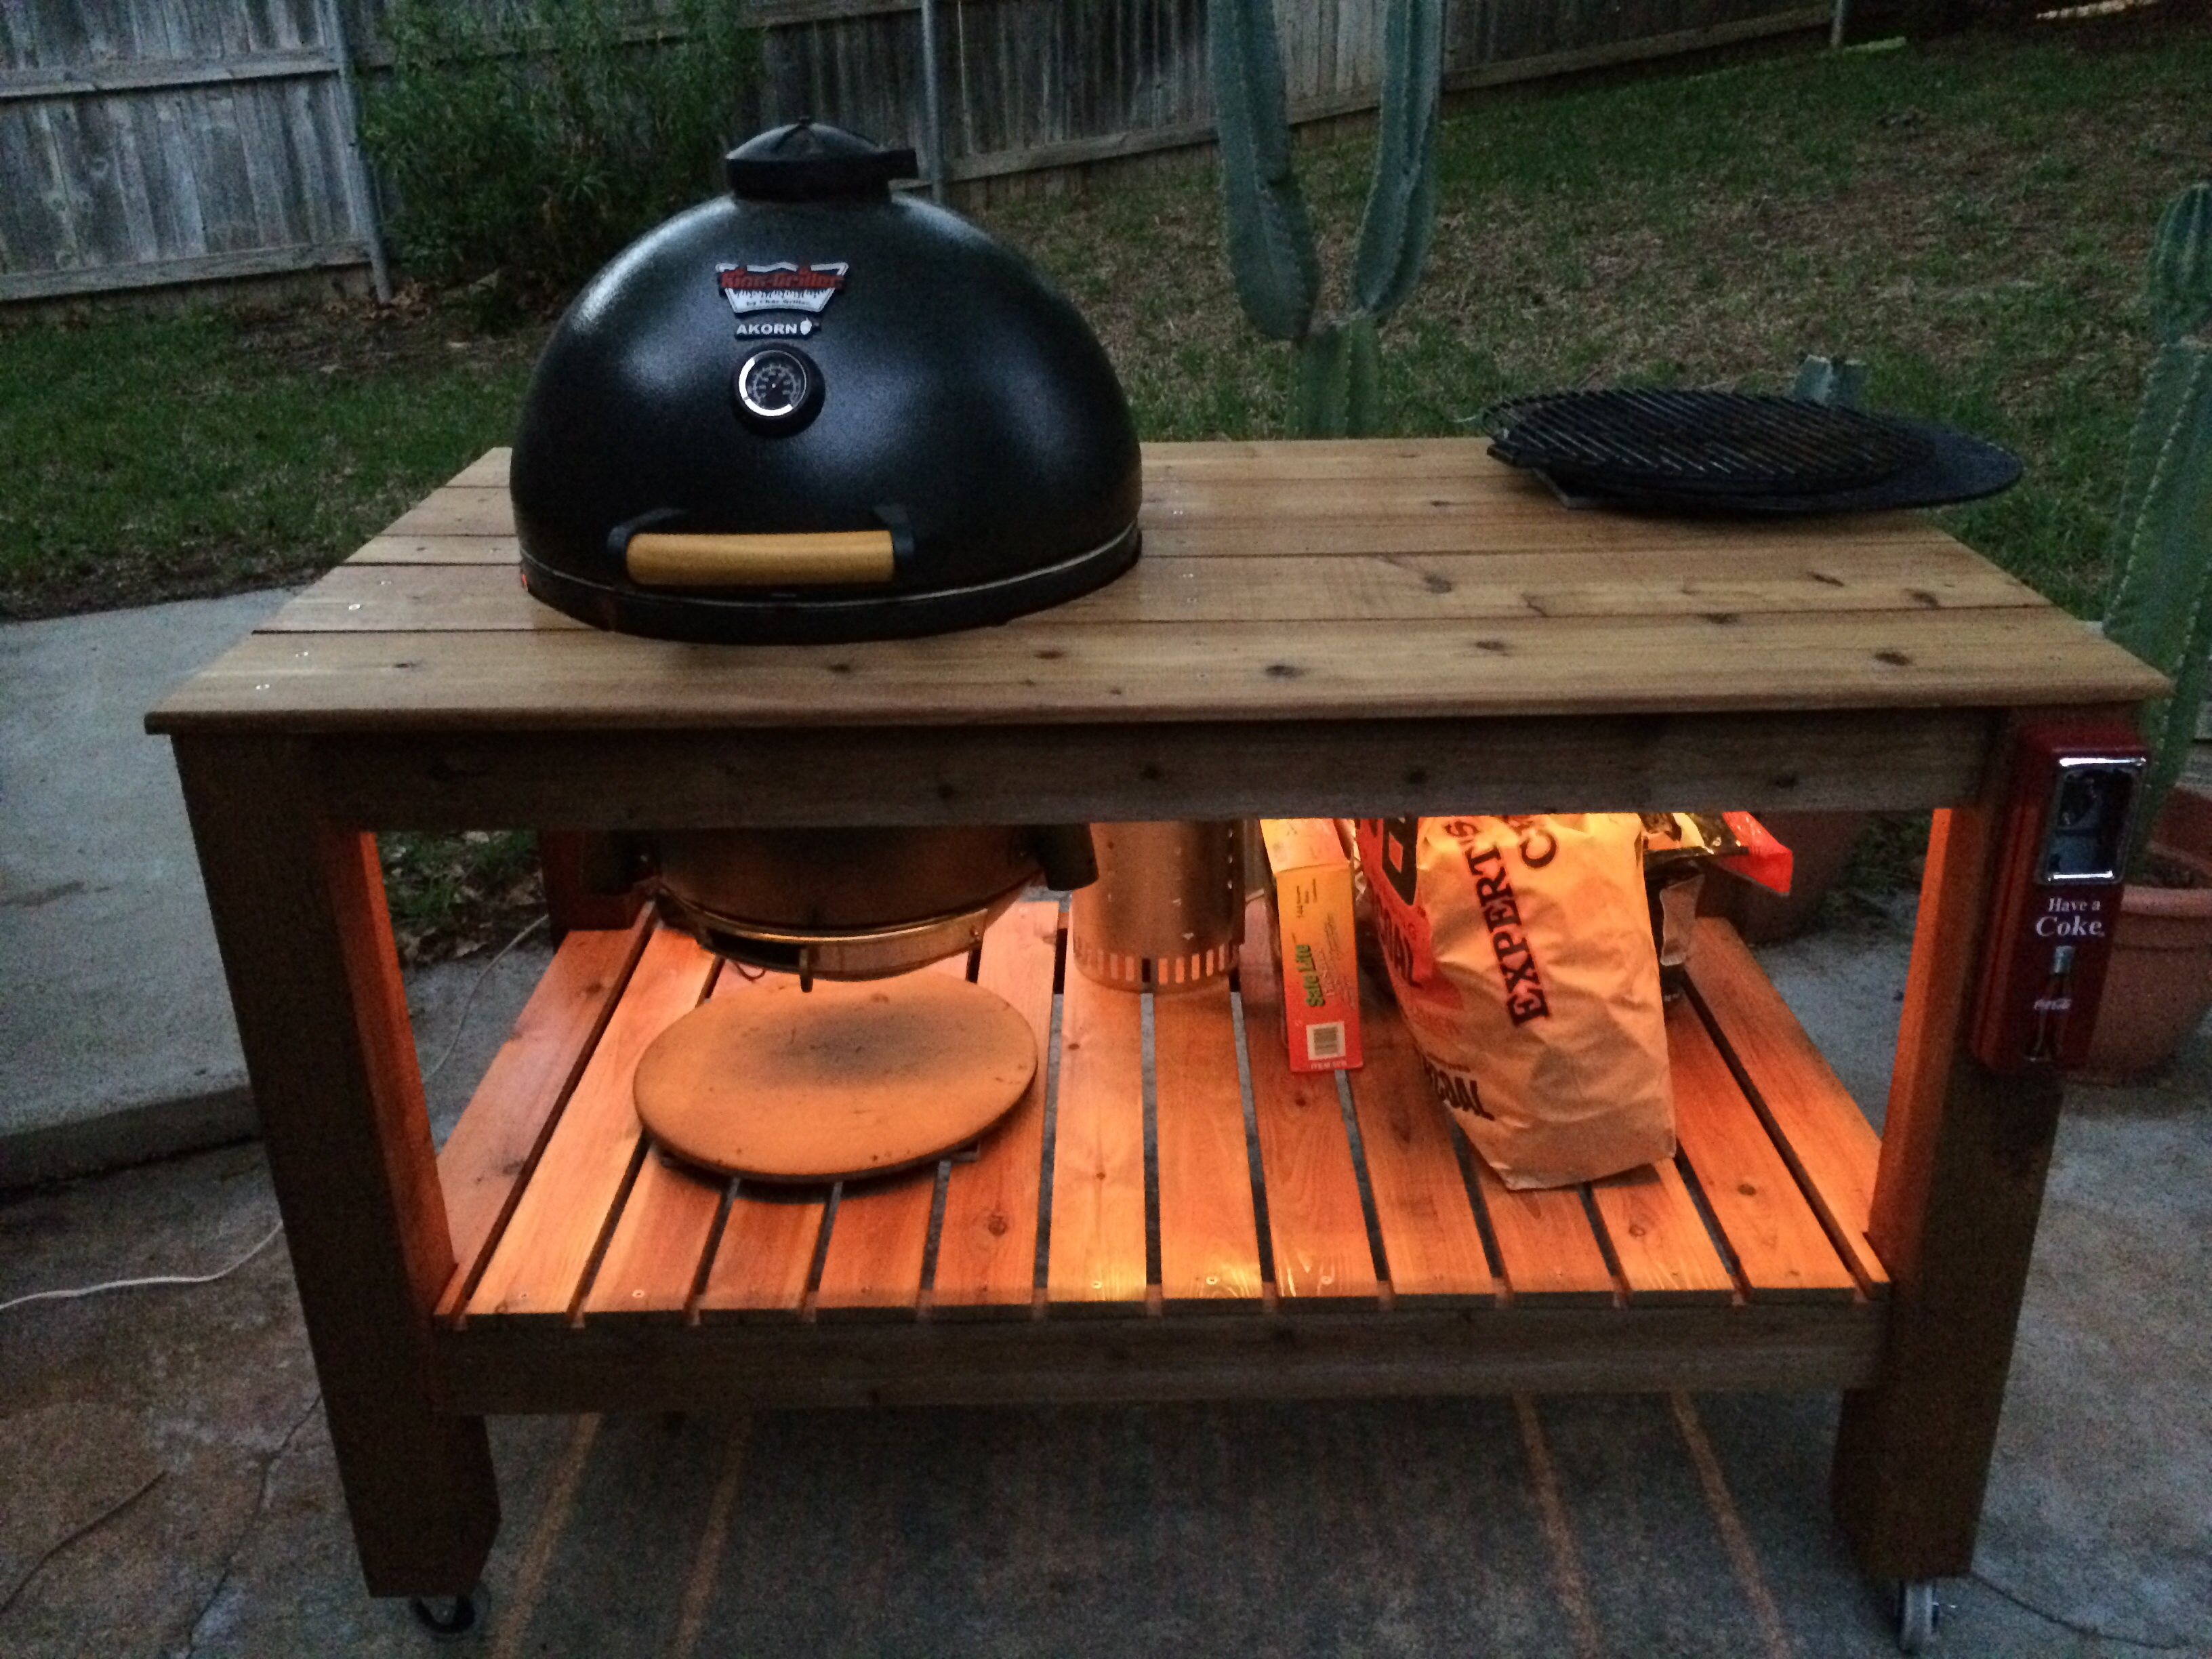 Akorn Table Complete Page CharGriller AKORN Kamado King - Table with grill built in